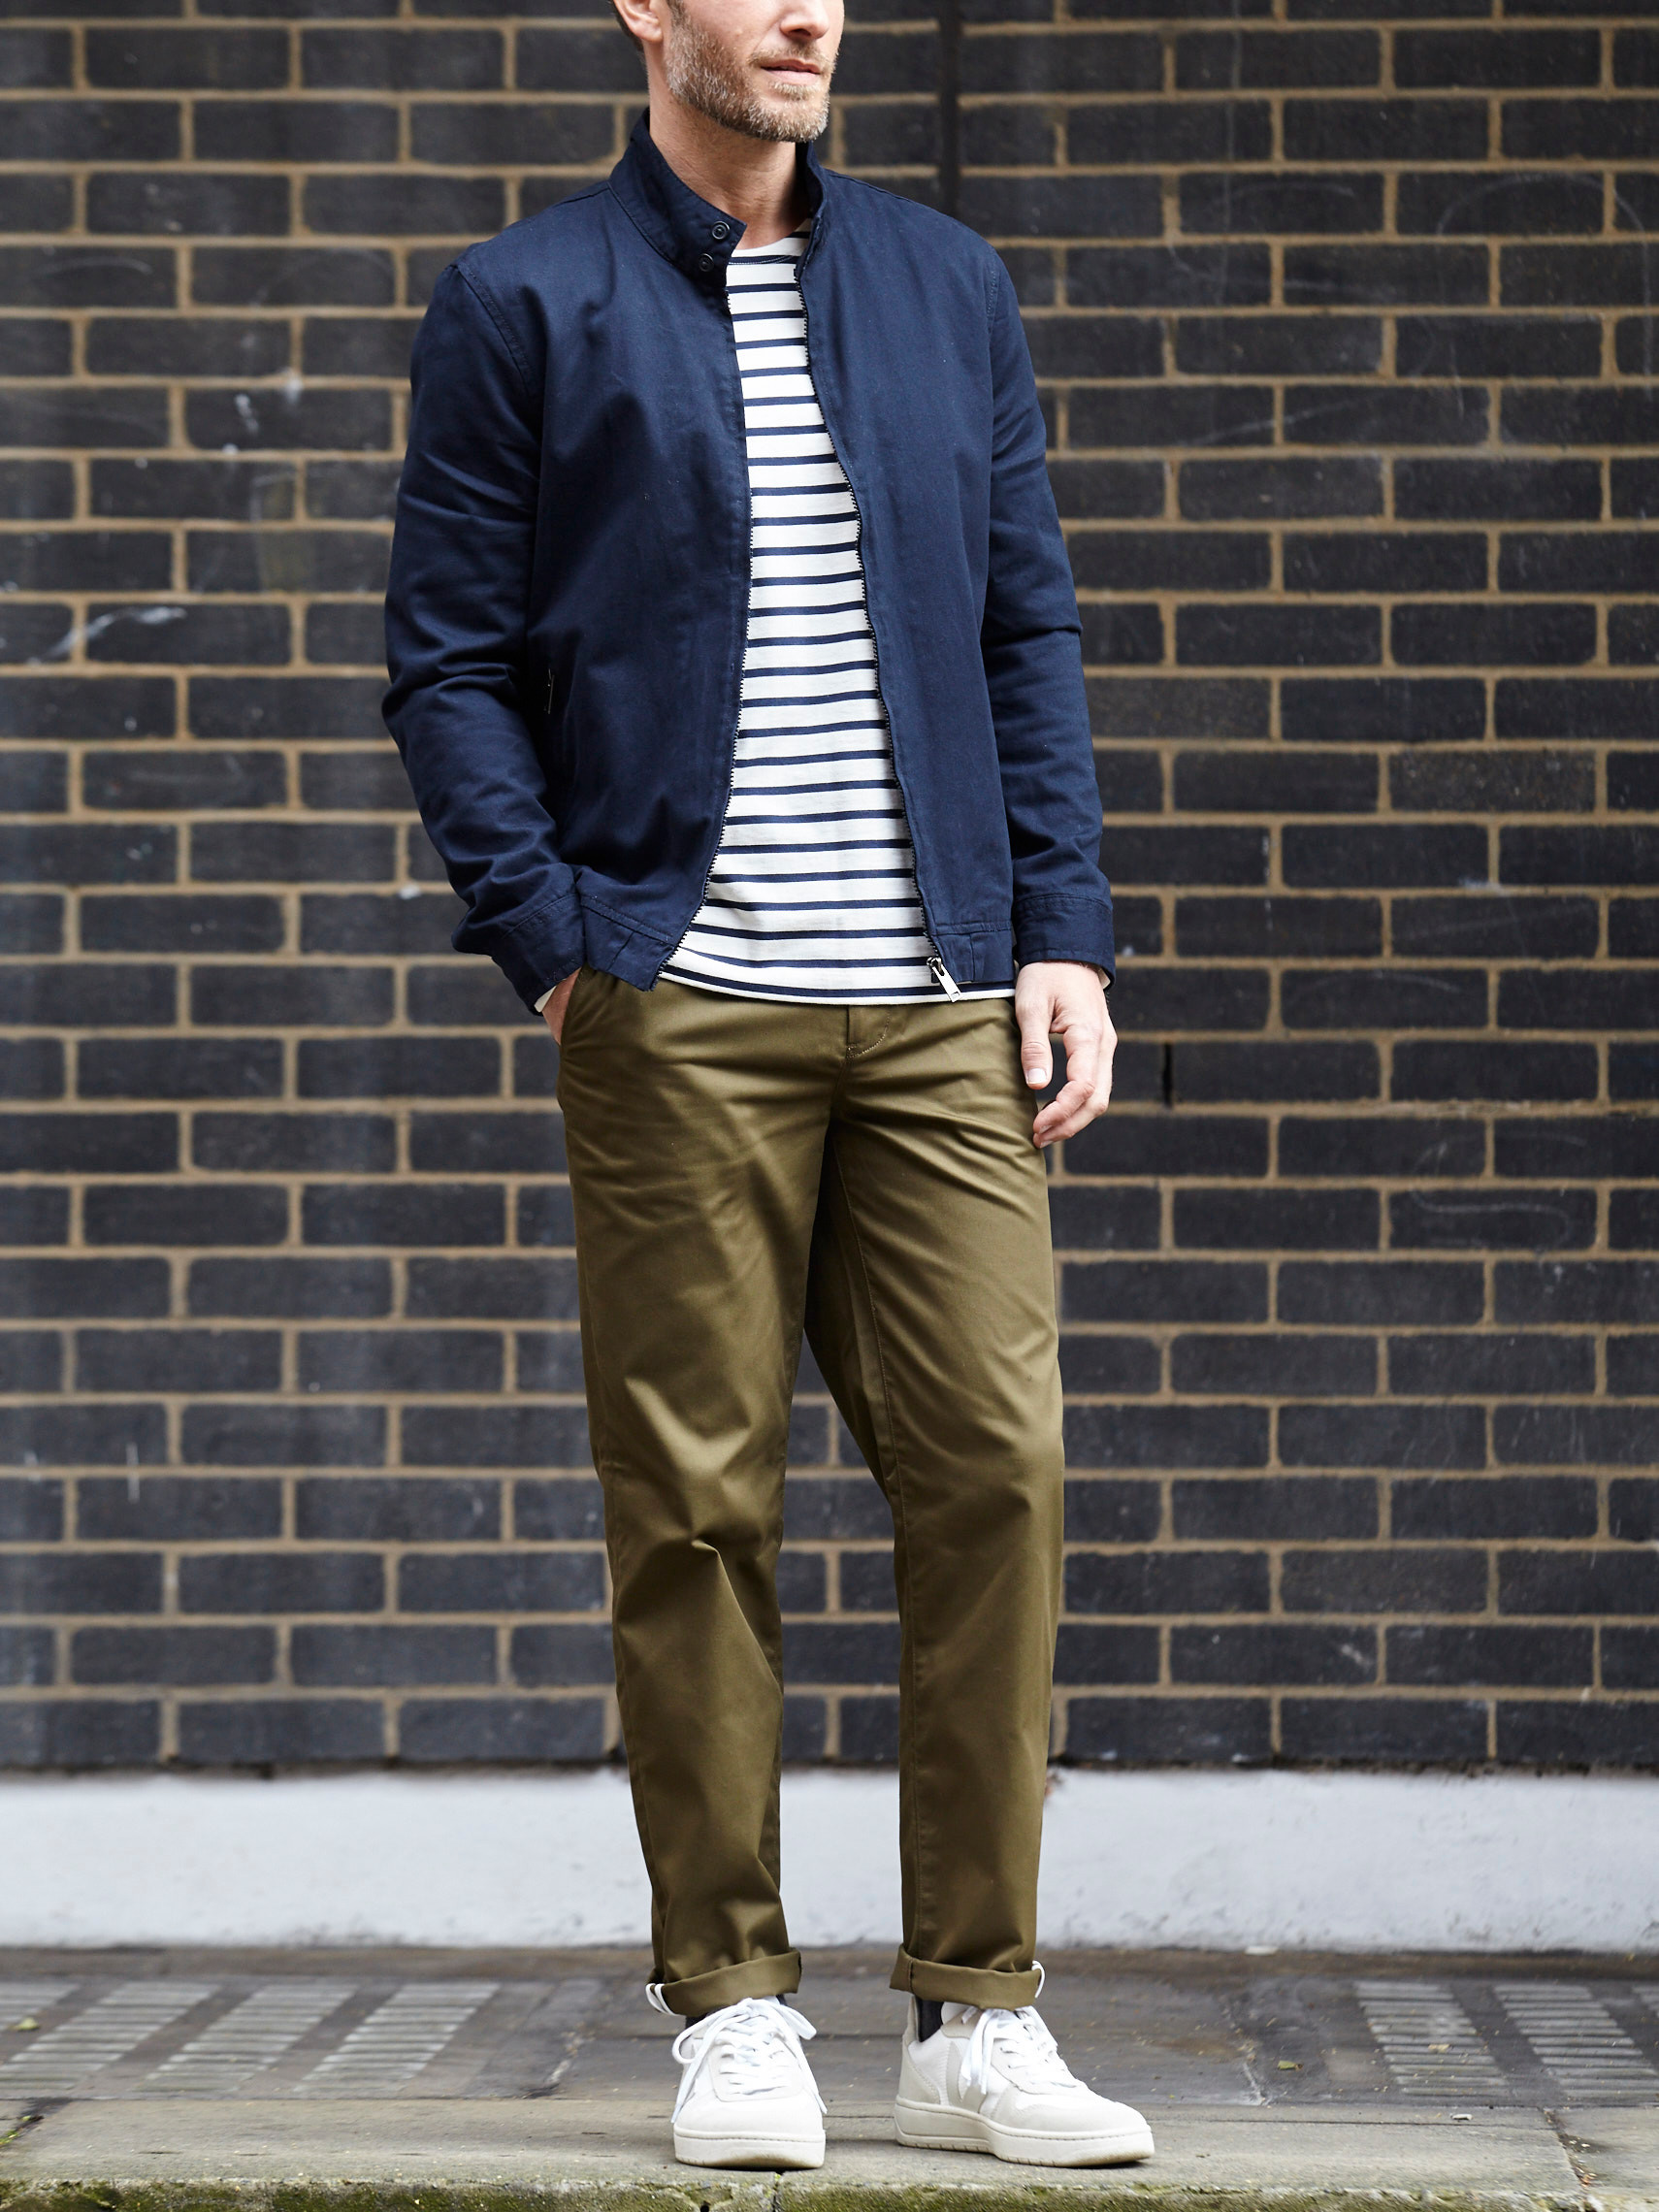 Men's outfit idea for 2021 with bomber jacket, striped crew neck t-shirt, colored chinos, white sneakers. Suitable for spring, fall and winter.